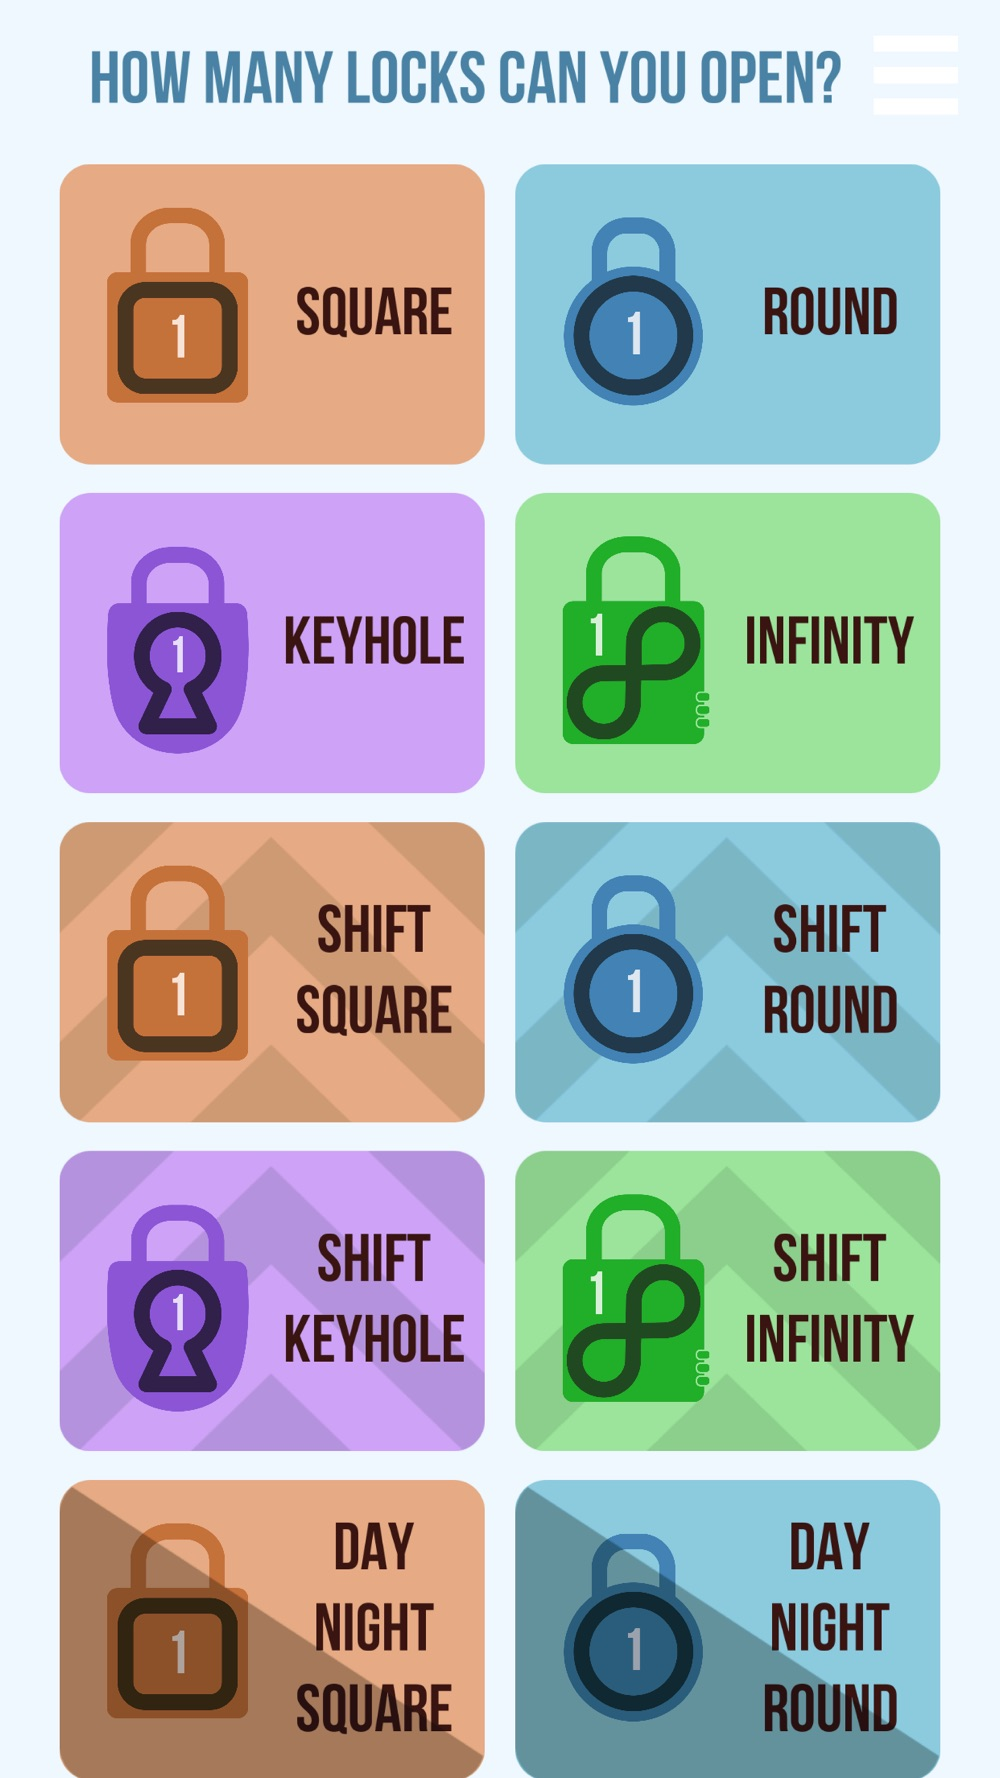 Amazing Locks open as many locks as you can Cheat Codes